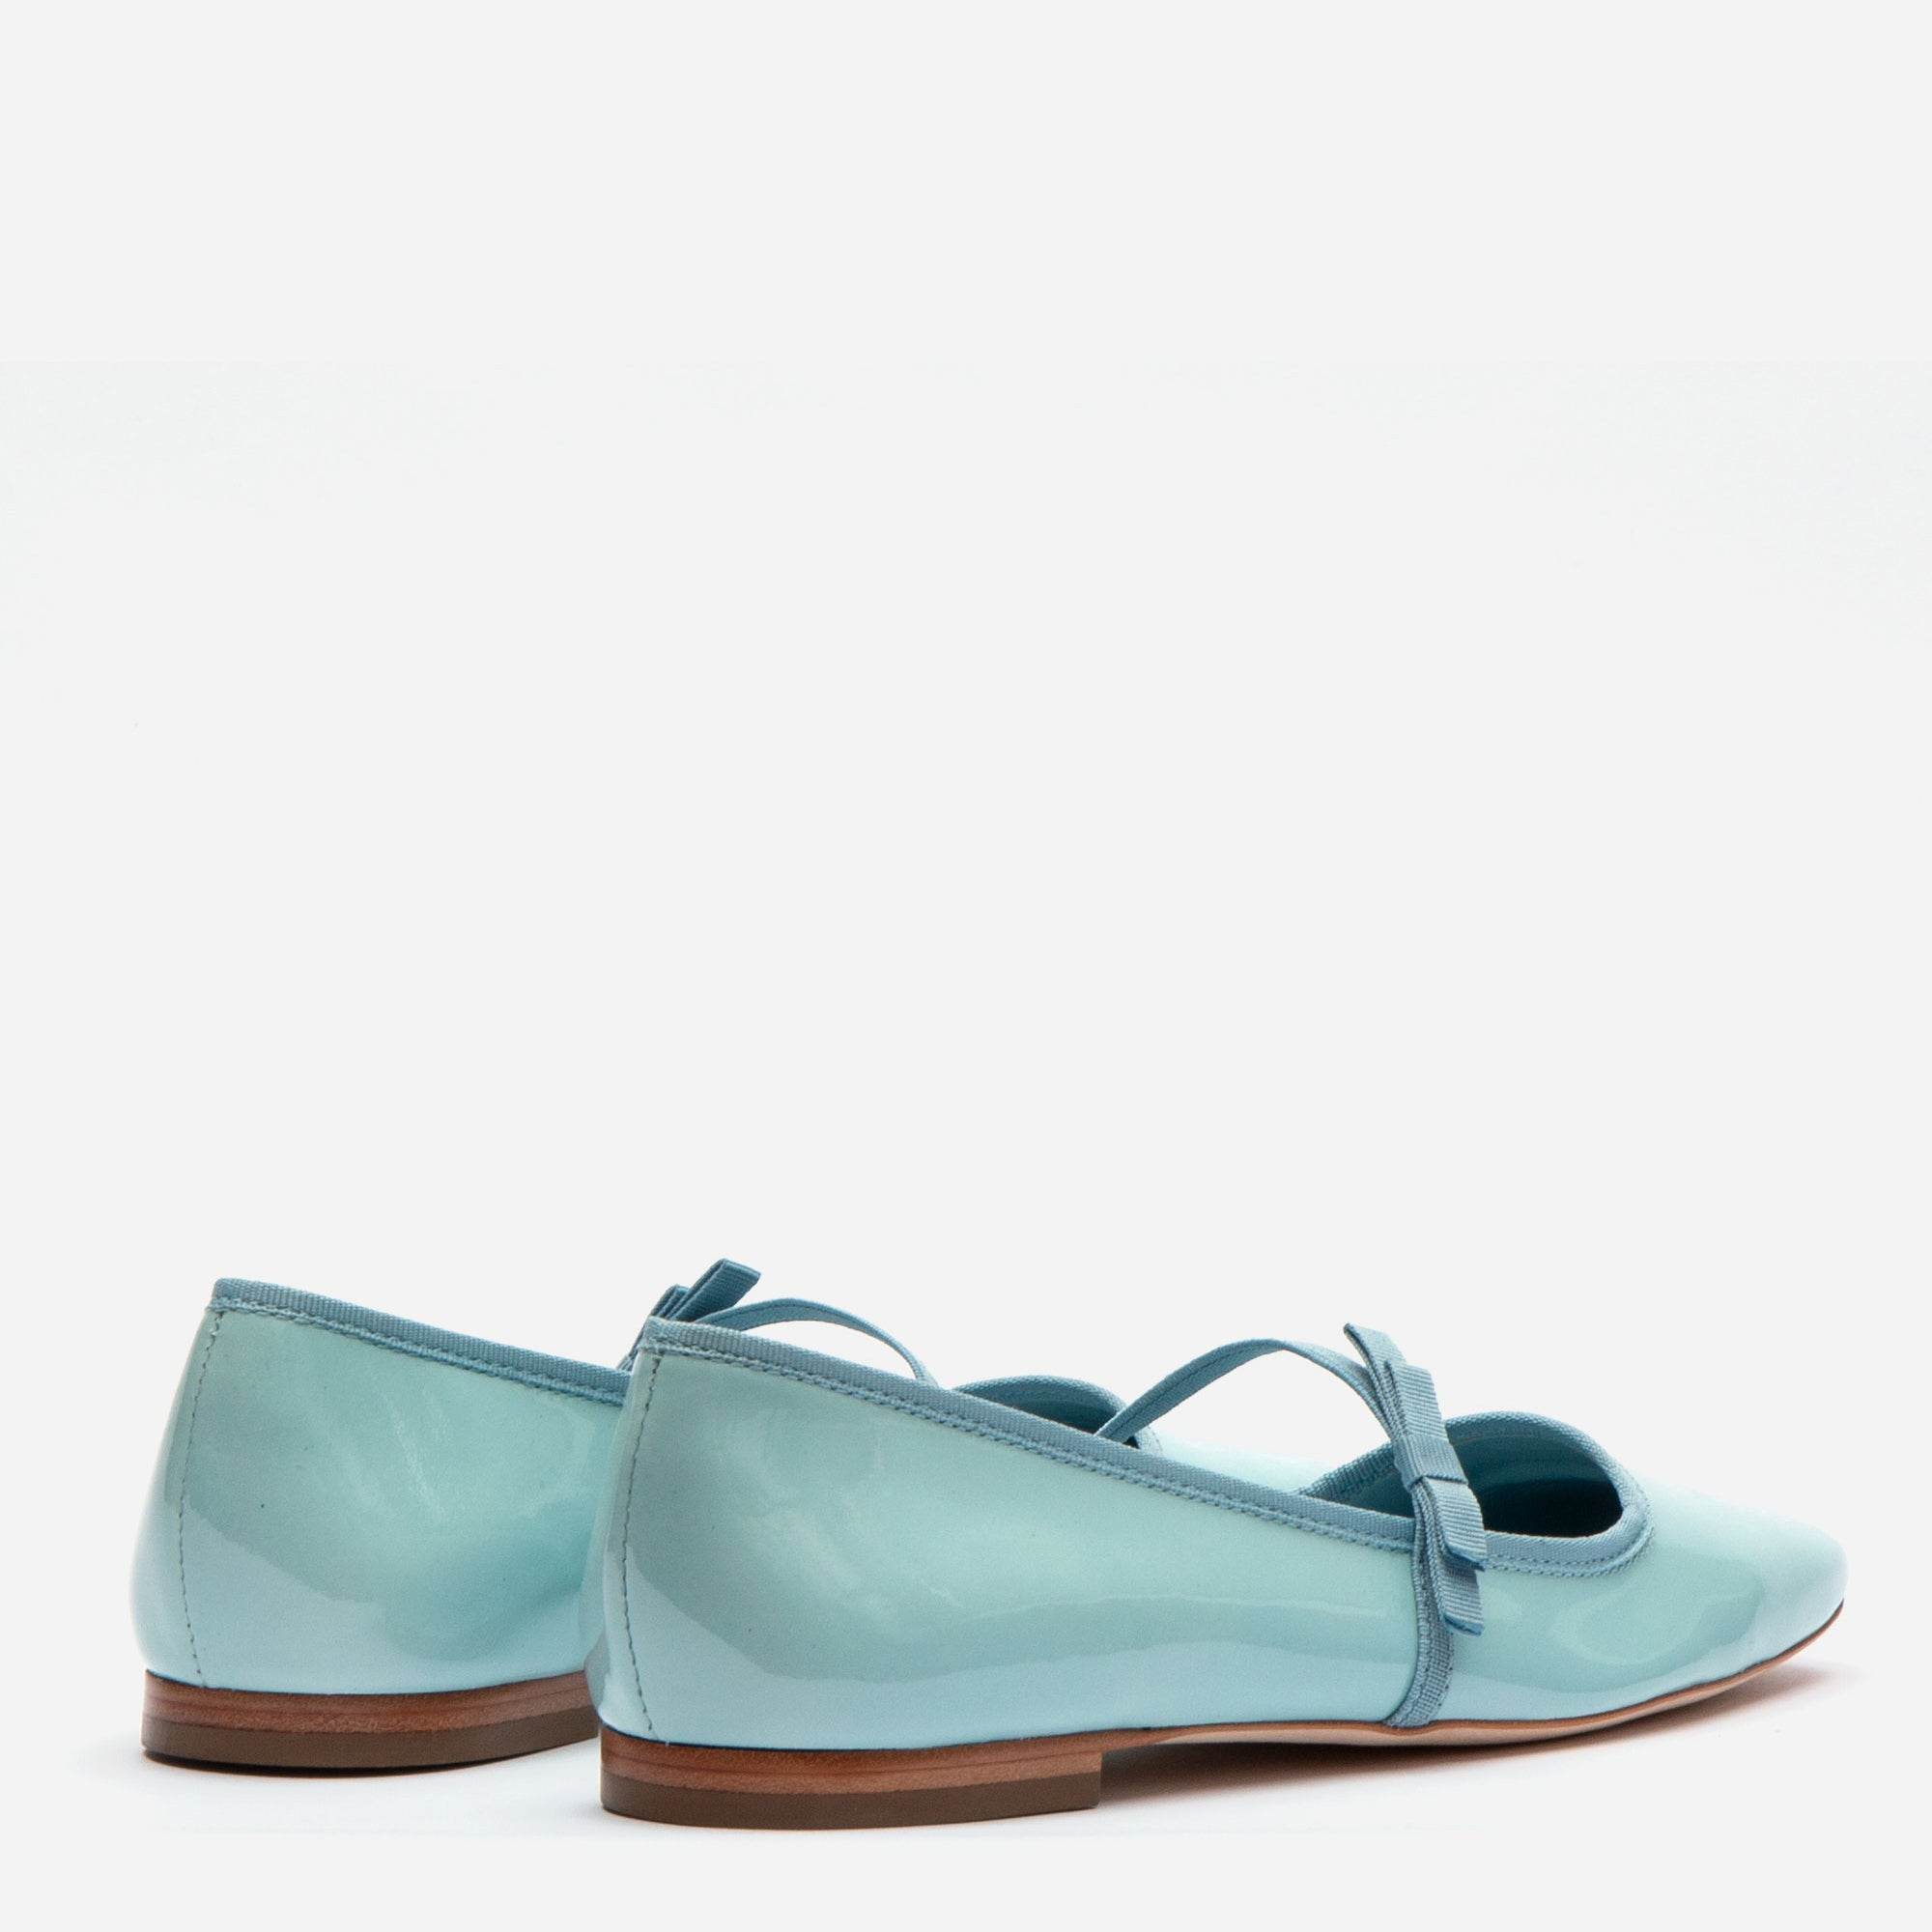 Jude Mary Jane Flats Light Blue Patent